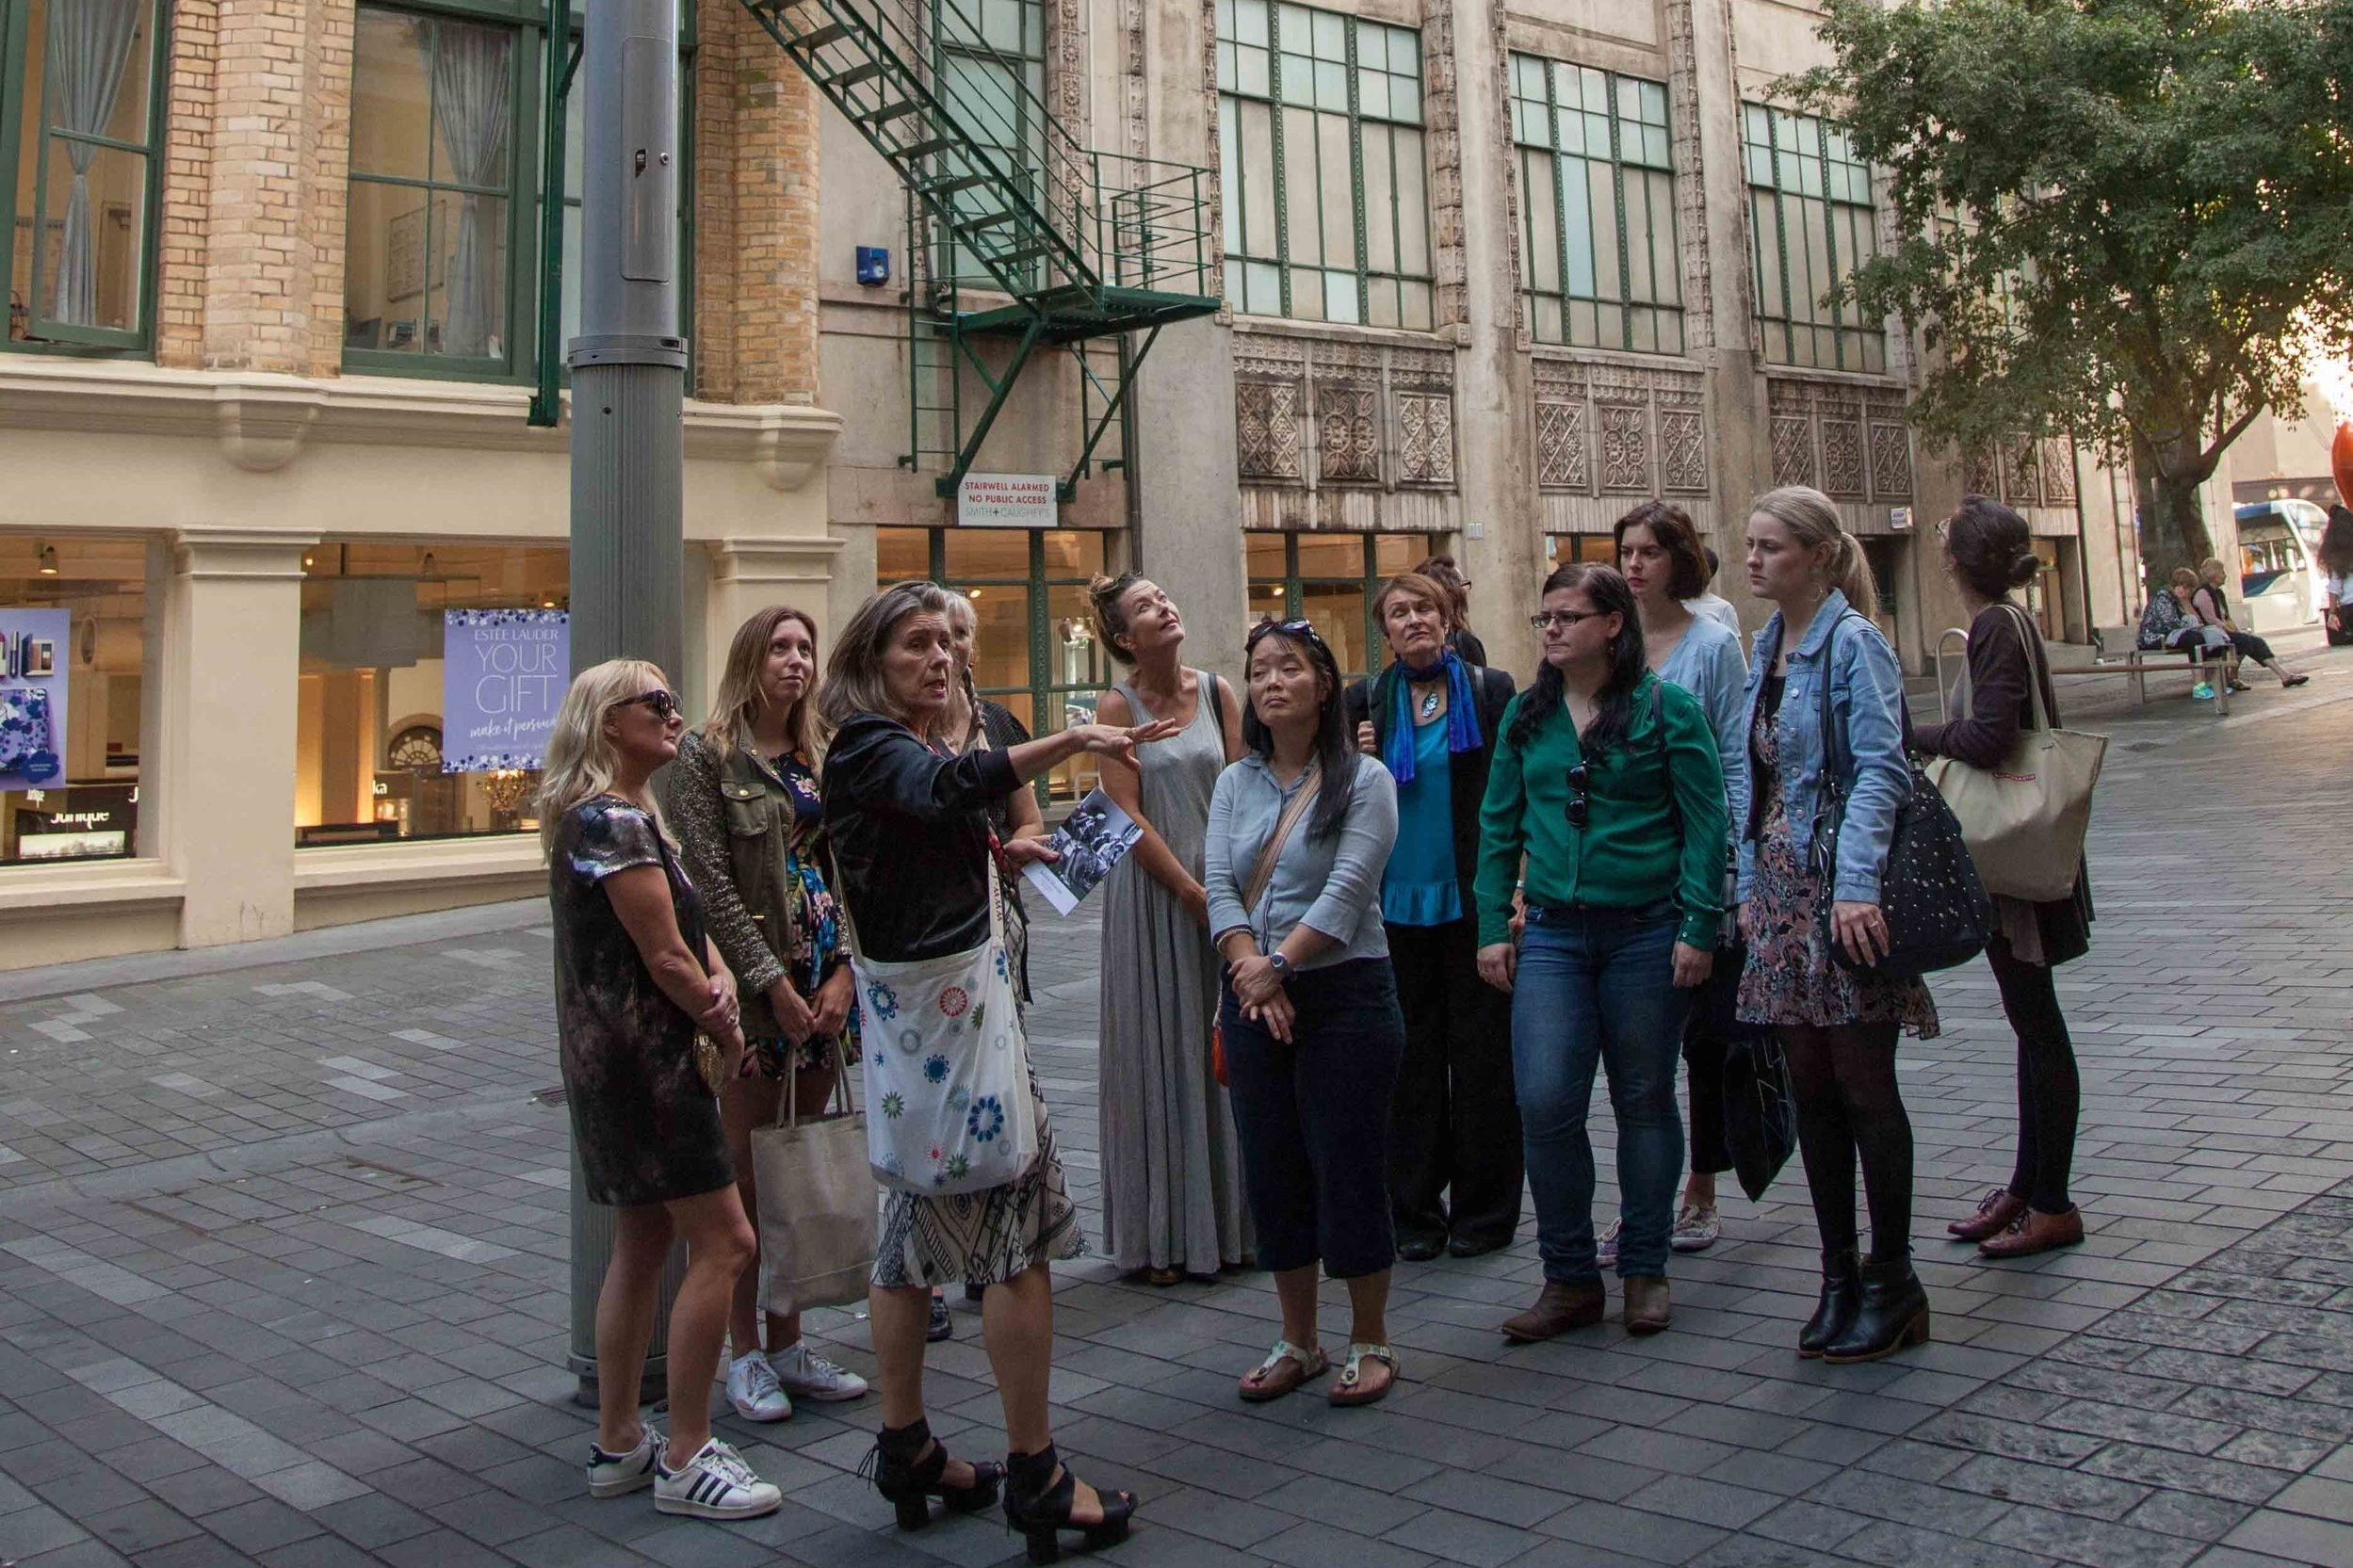 Walk the Walk: A History of Fashion in the City  Various locations in central Auckland  Wednesday 28 August | 10AM – 11AM & 12PM – 1PM Friday 30 August | 11AM – 12PM & 1PM – 2PM Saturday 31 August | 1.30PM – 2.30PM & 3.30PM – 4.30PM   The NZ Fashion Museum will be taking guests on 'Walk the Walk' fashion tours during NZ Fashion Week. Led by a personal guide, the tour traverses more than 150 years of fashion history within half a kilometre of central Auckland and offers a glimpse into the lives and stories of the people who established and advanced the city's fashion credentials.